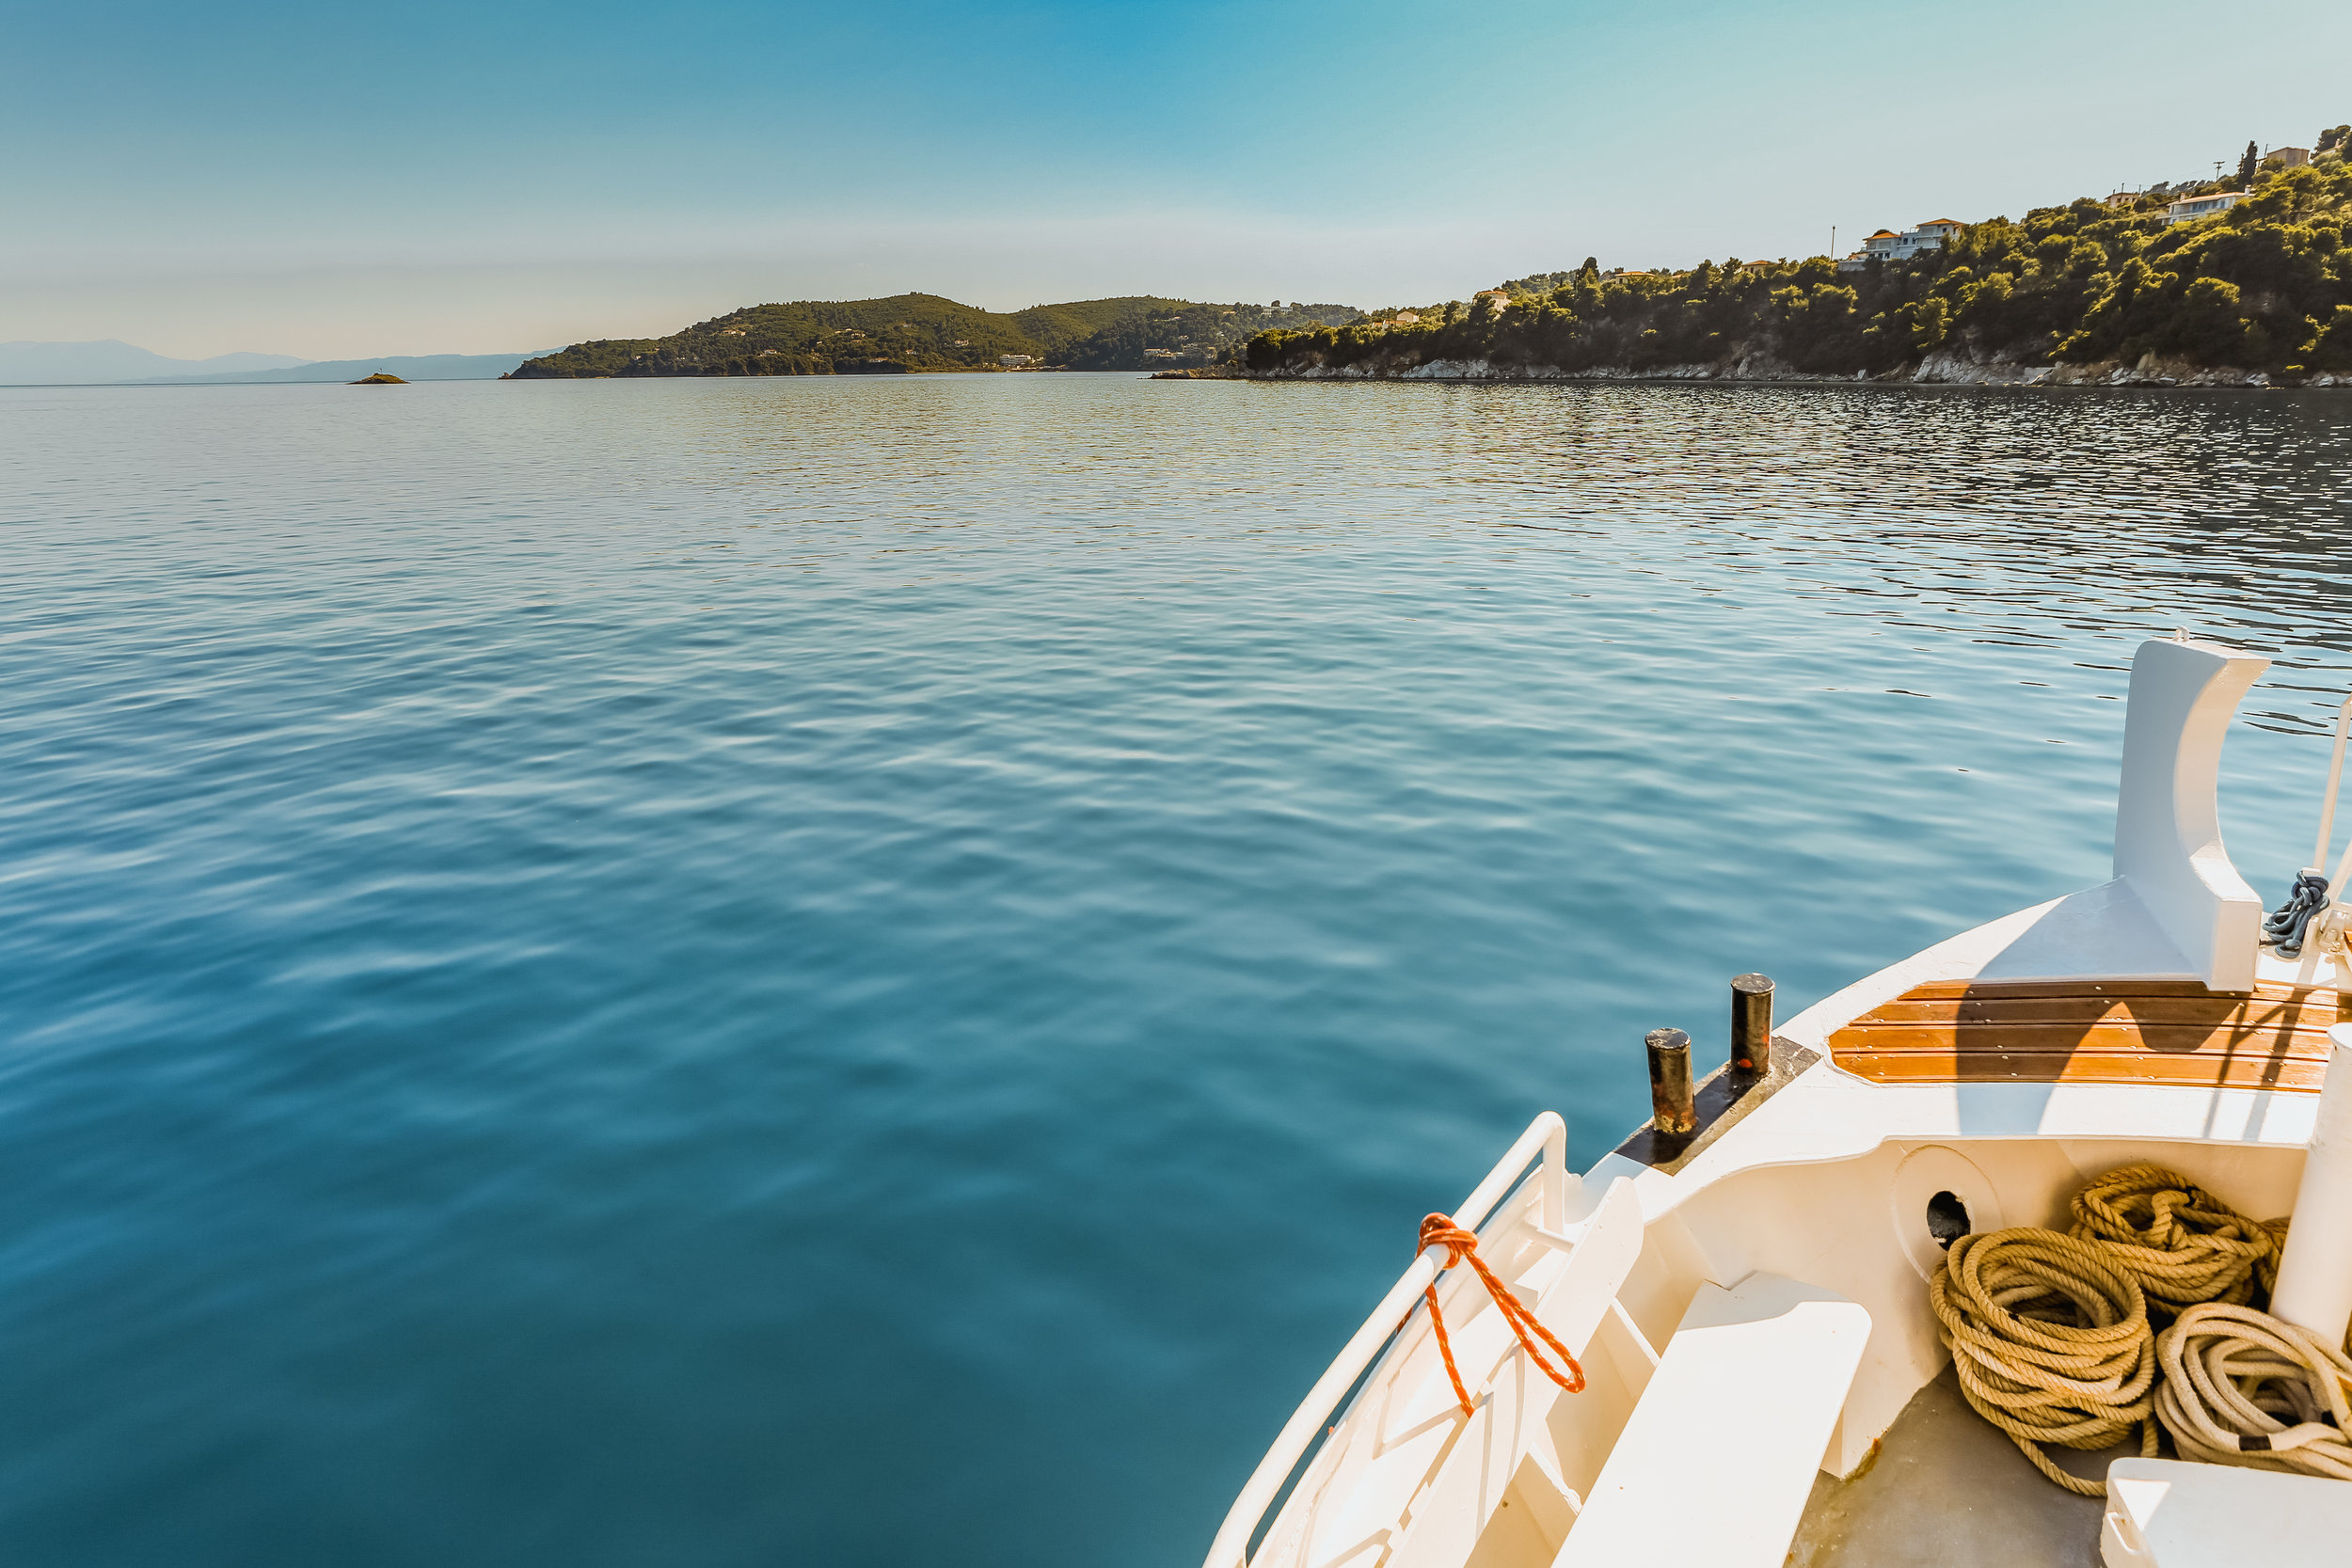 Skiathos Island. Photo by  Nick Karvounis  via Unsplash.